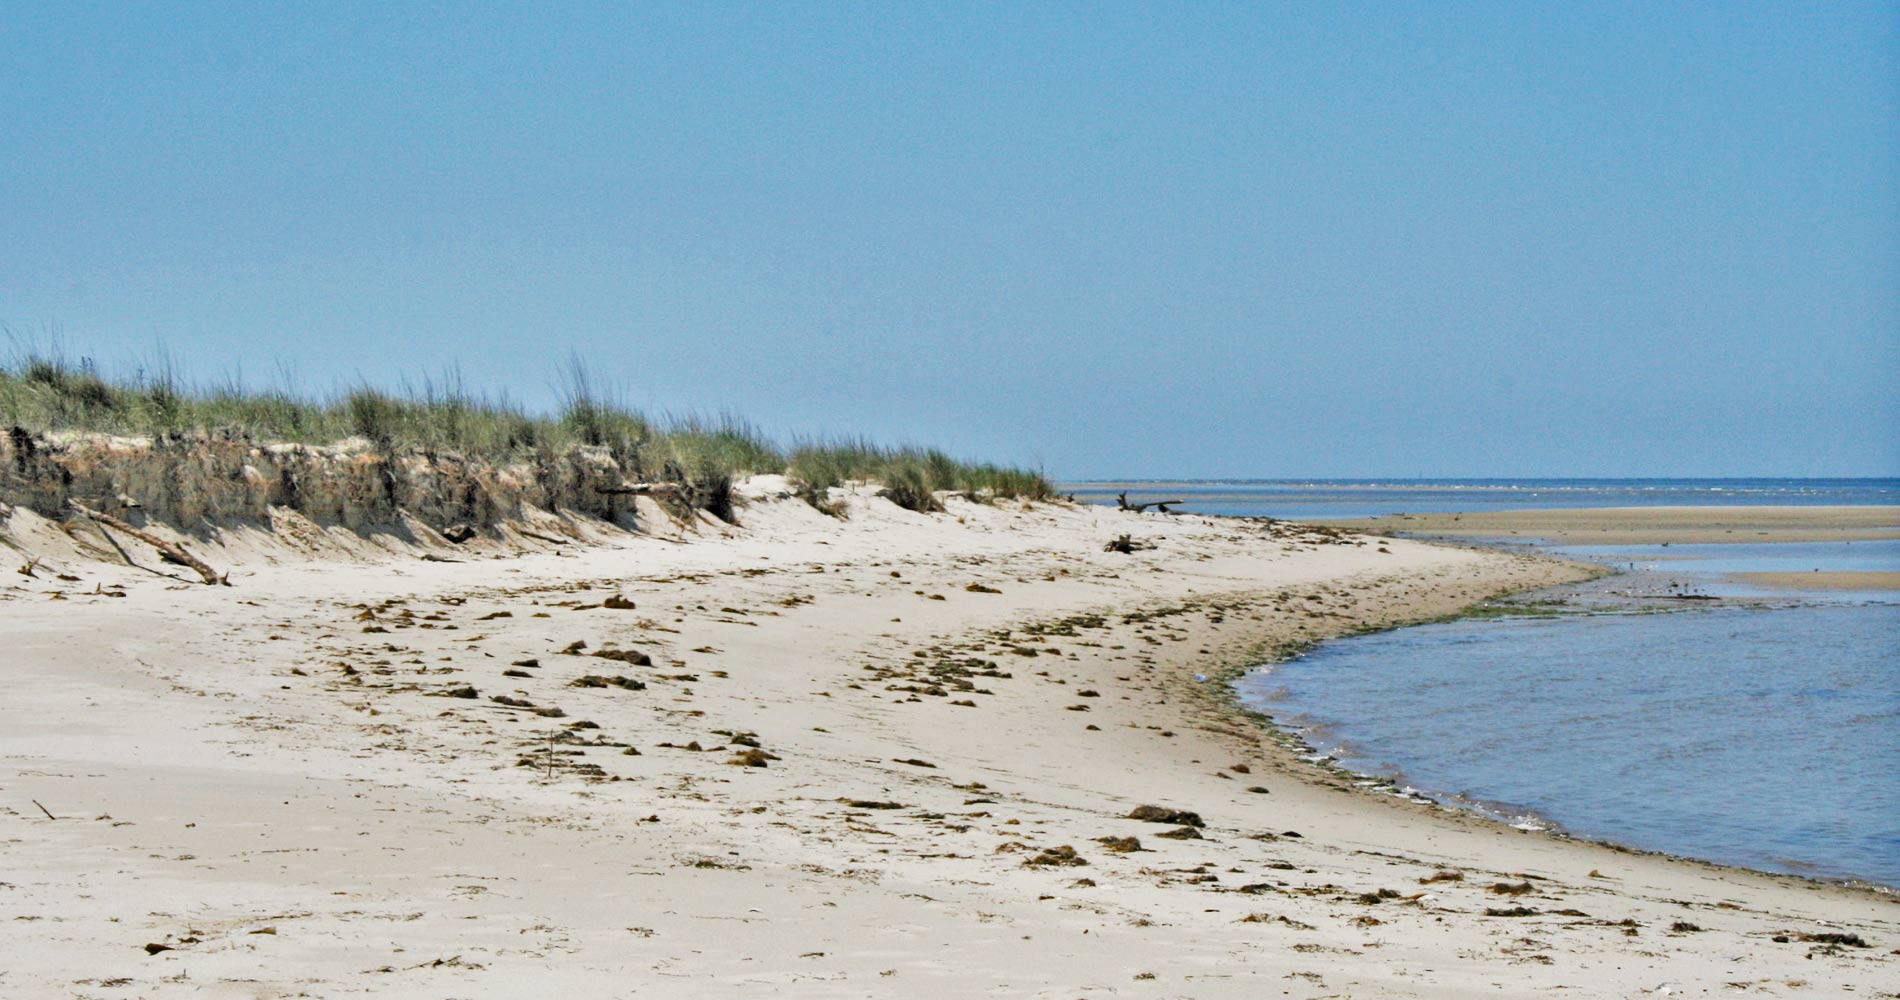 A beach on Savage Neck Dunes (Image courtesy: Virginia Department of Conservation and Recreation)